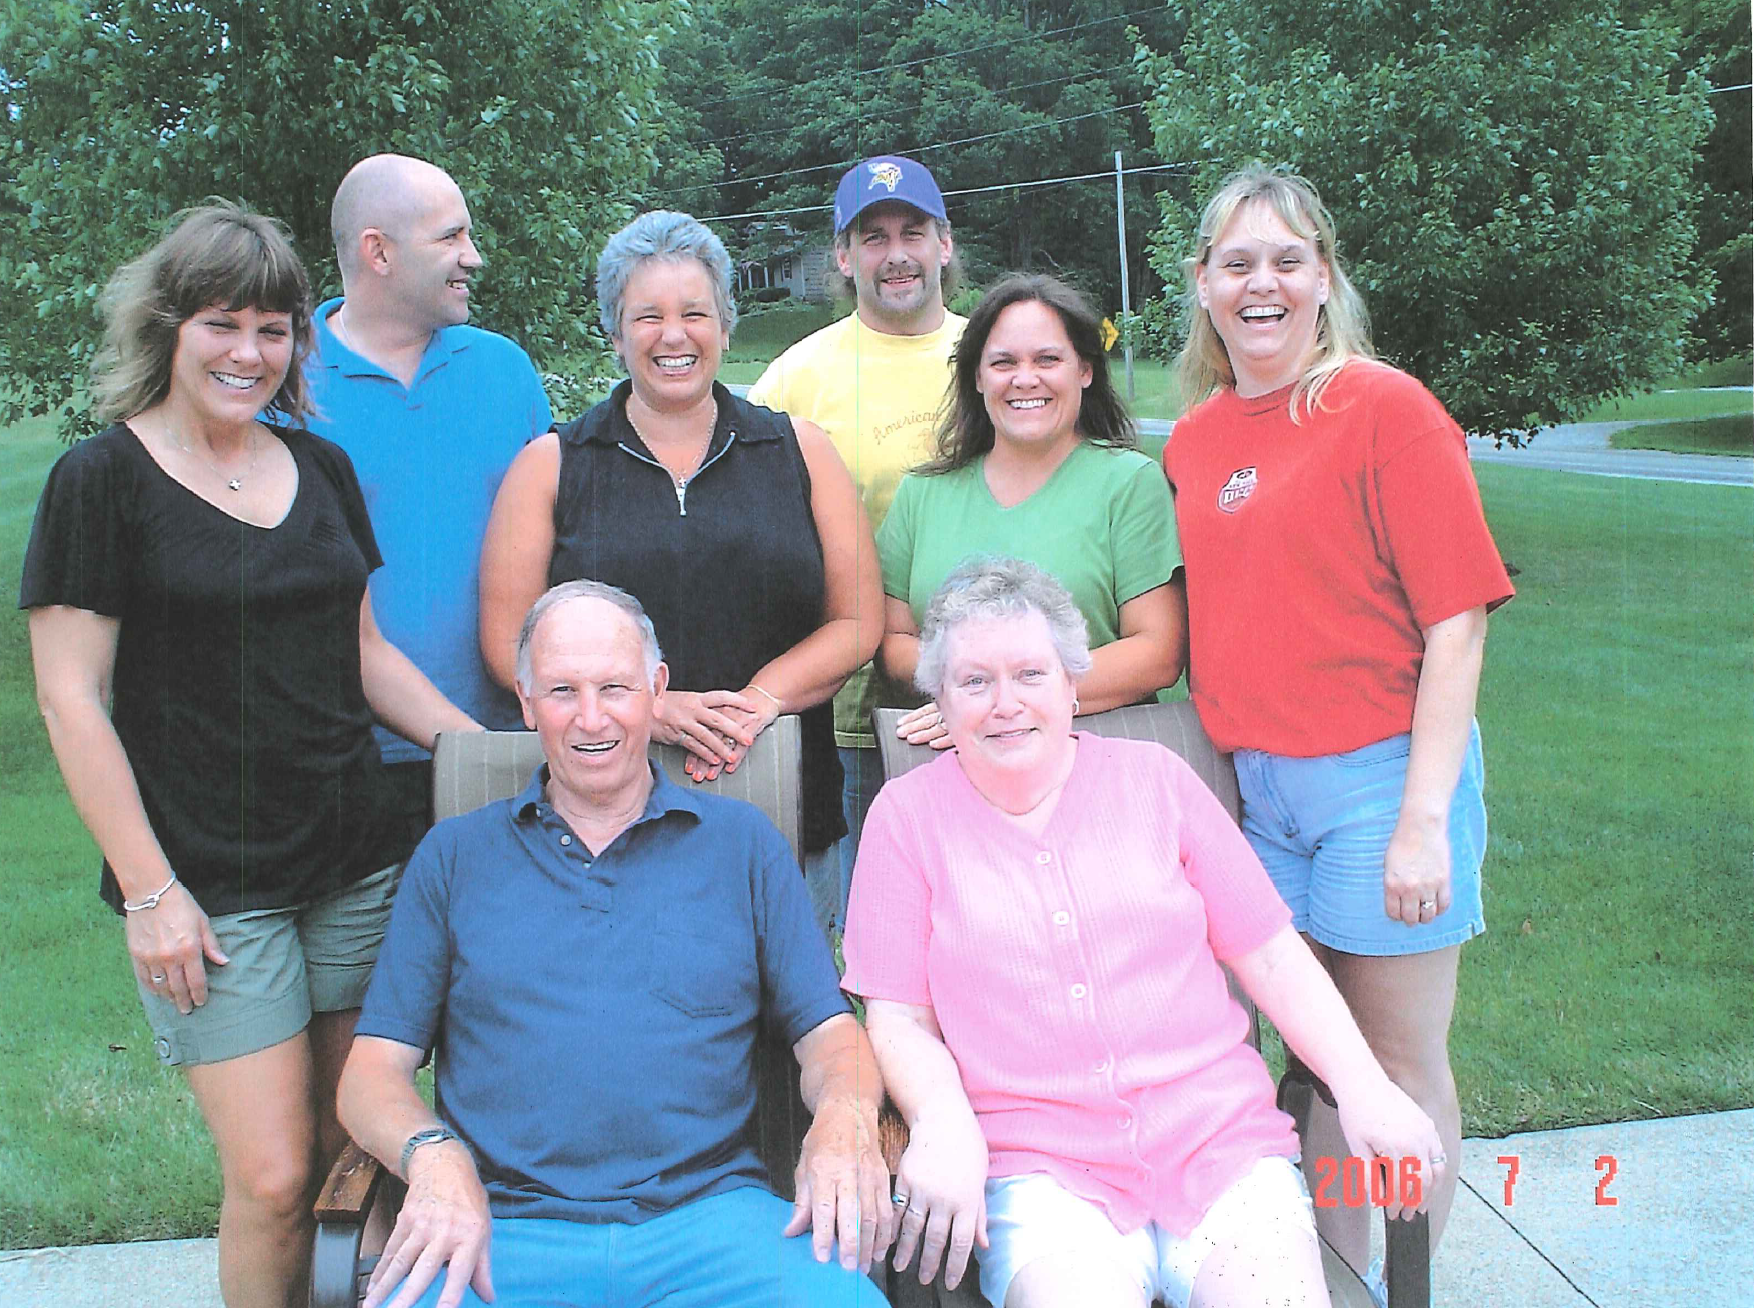 Pat (front, right) and family